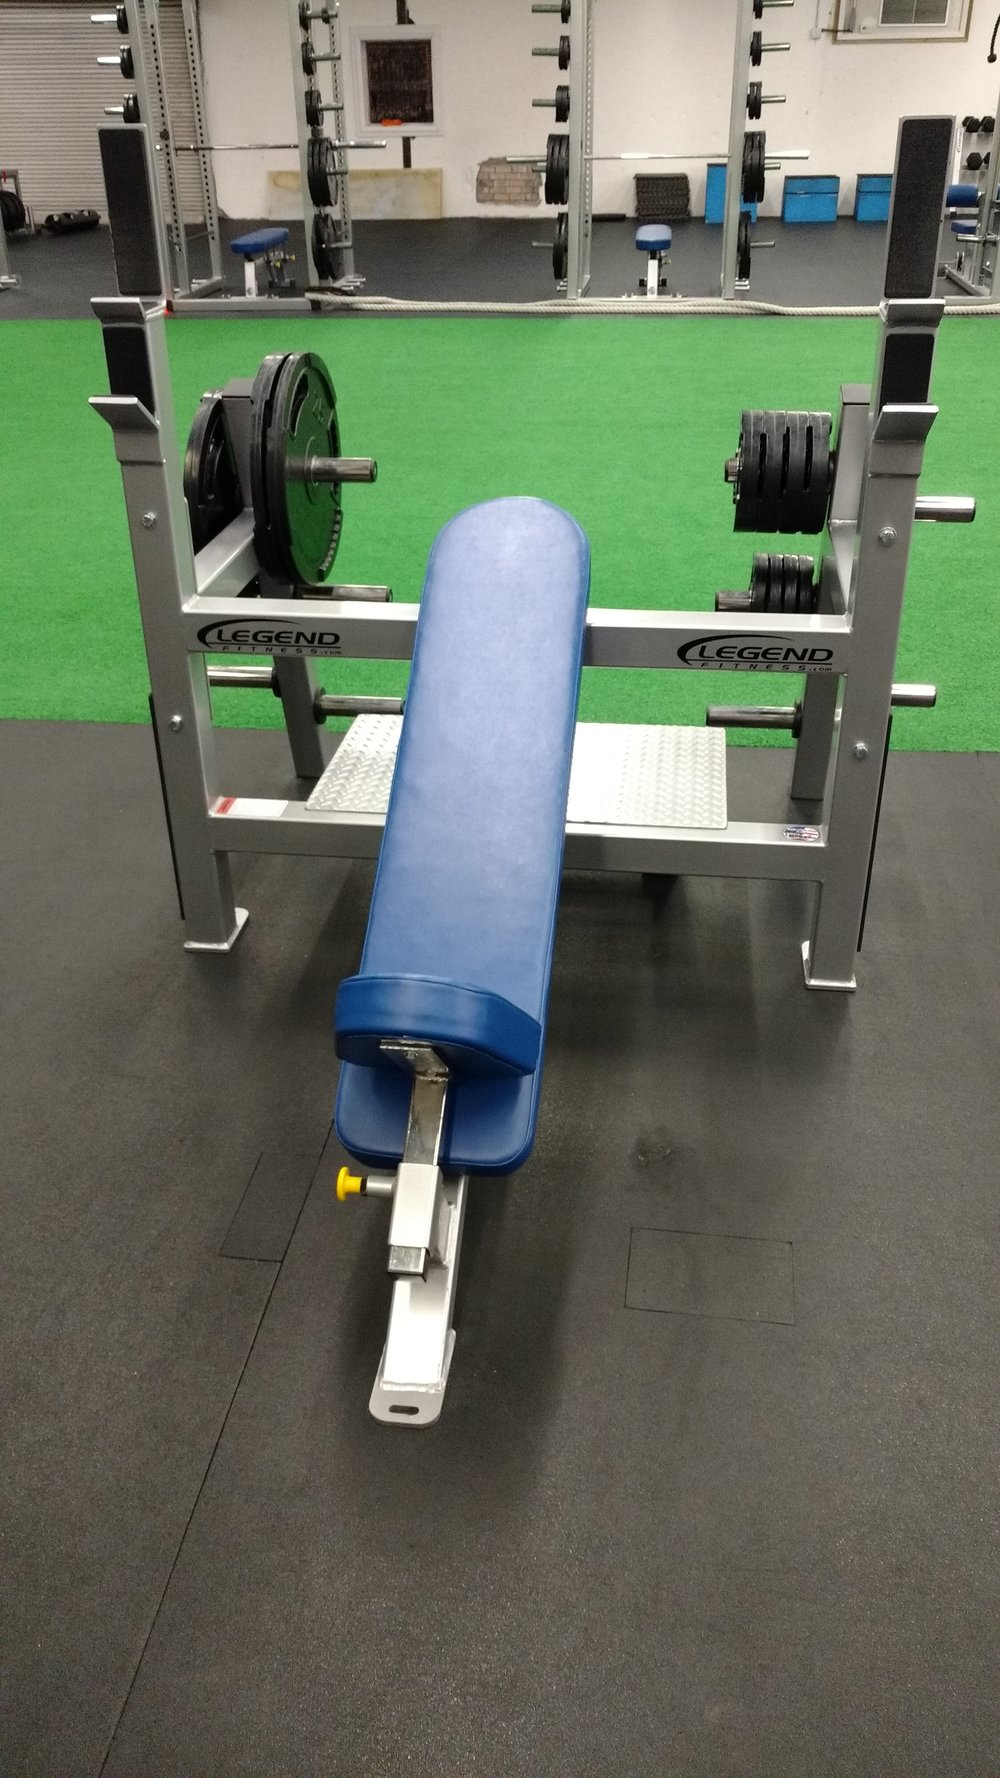 Legend Olympic Incline Bench